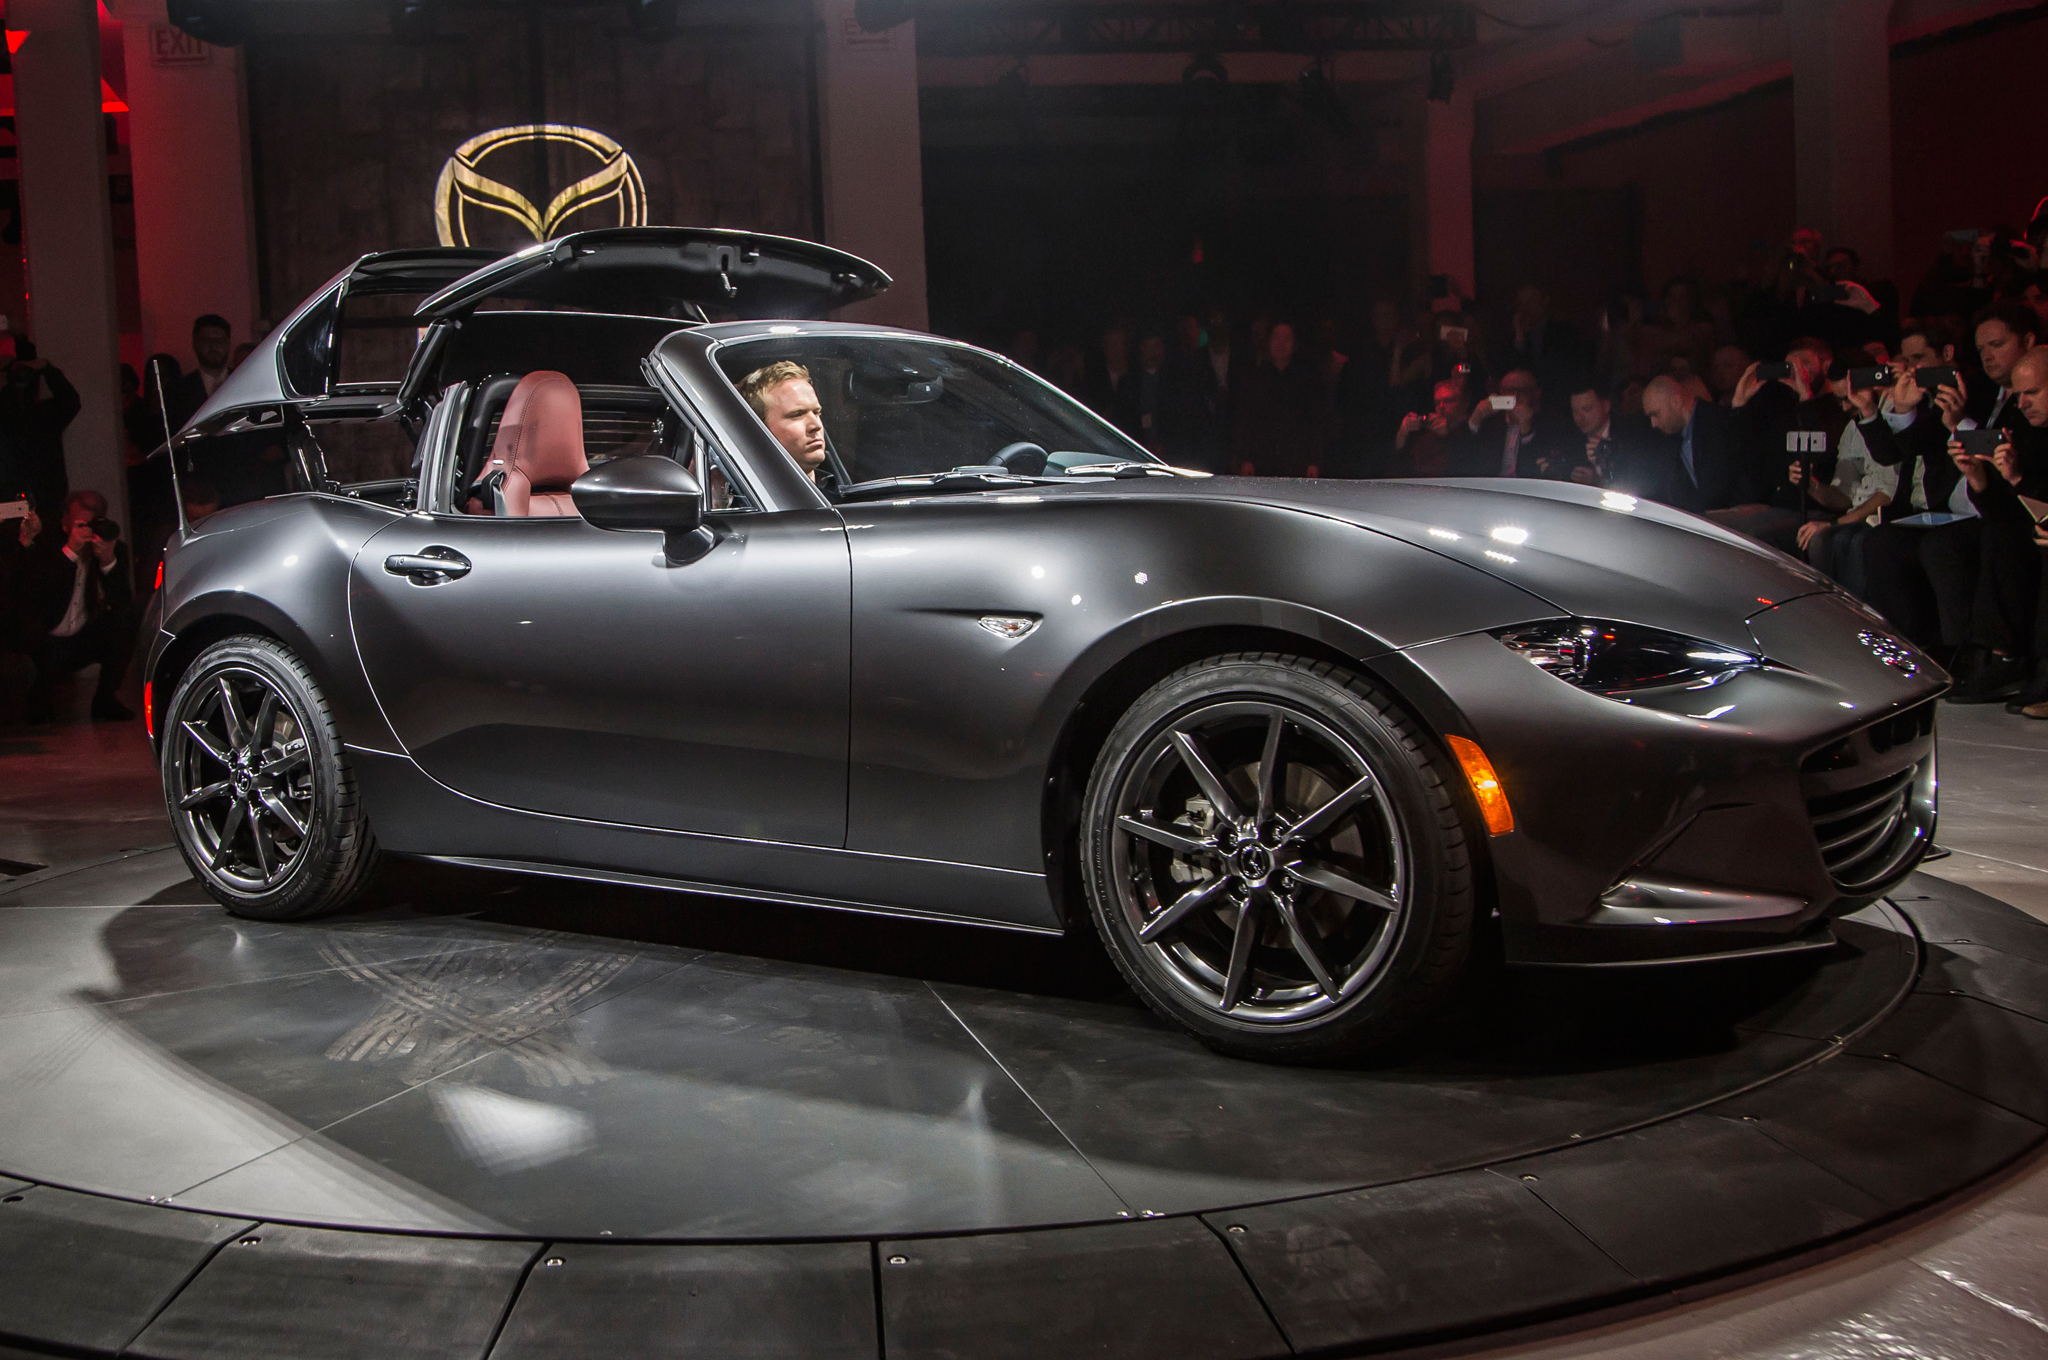 club the quarter new front miata to news planning york mazda three roof is mx in motion show hardtop up